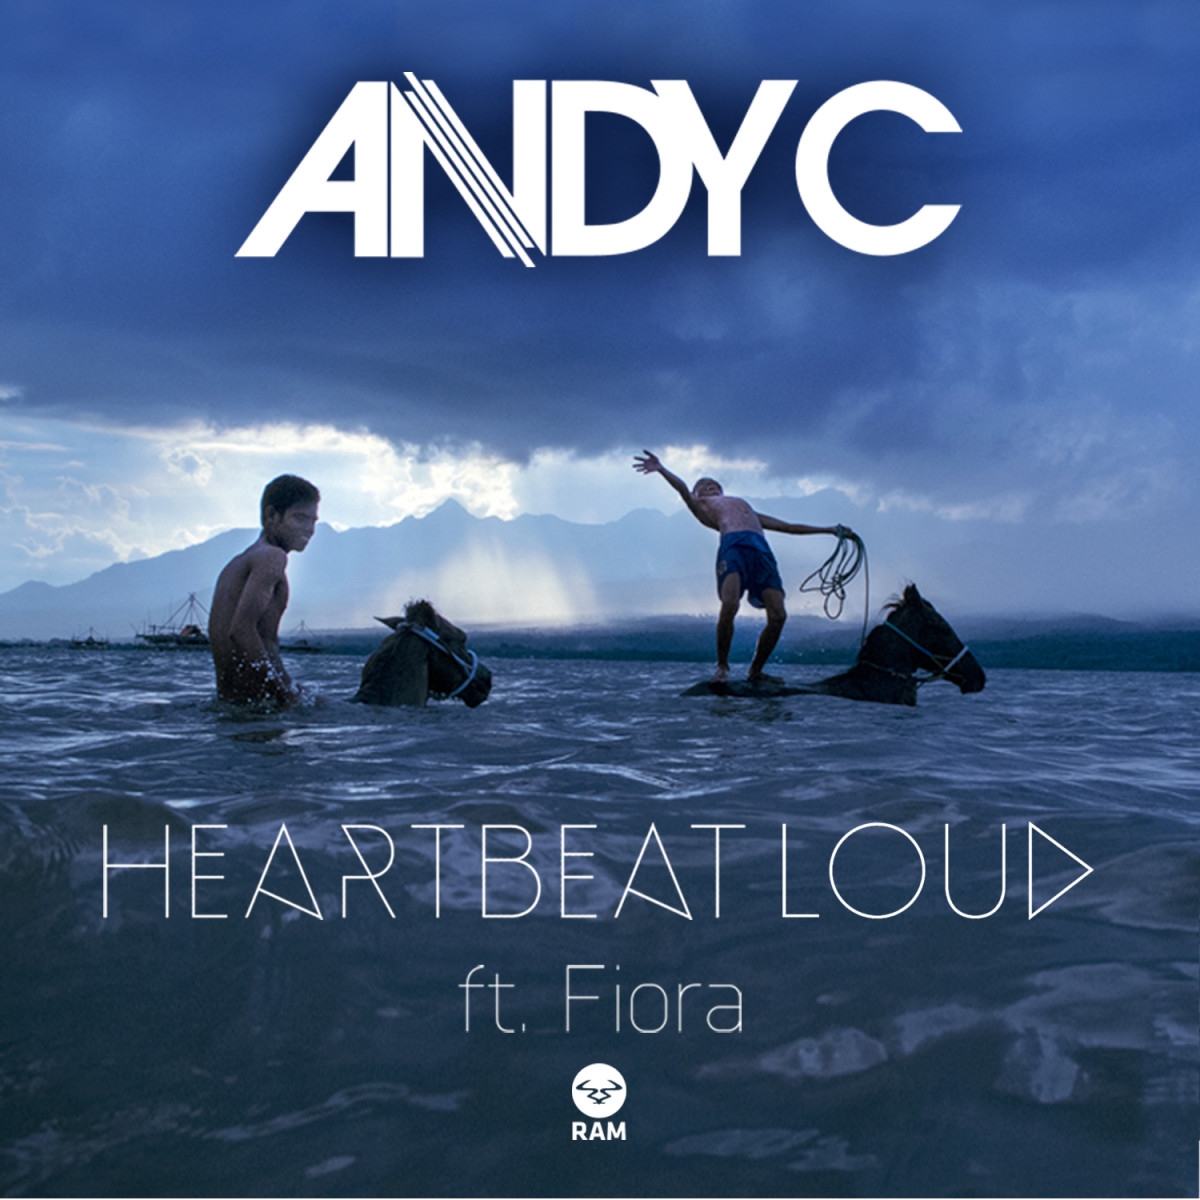 andy-c-heartbeat-loud-ft-fiora